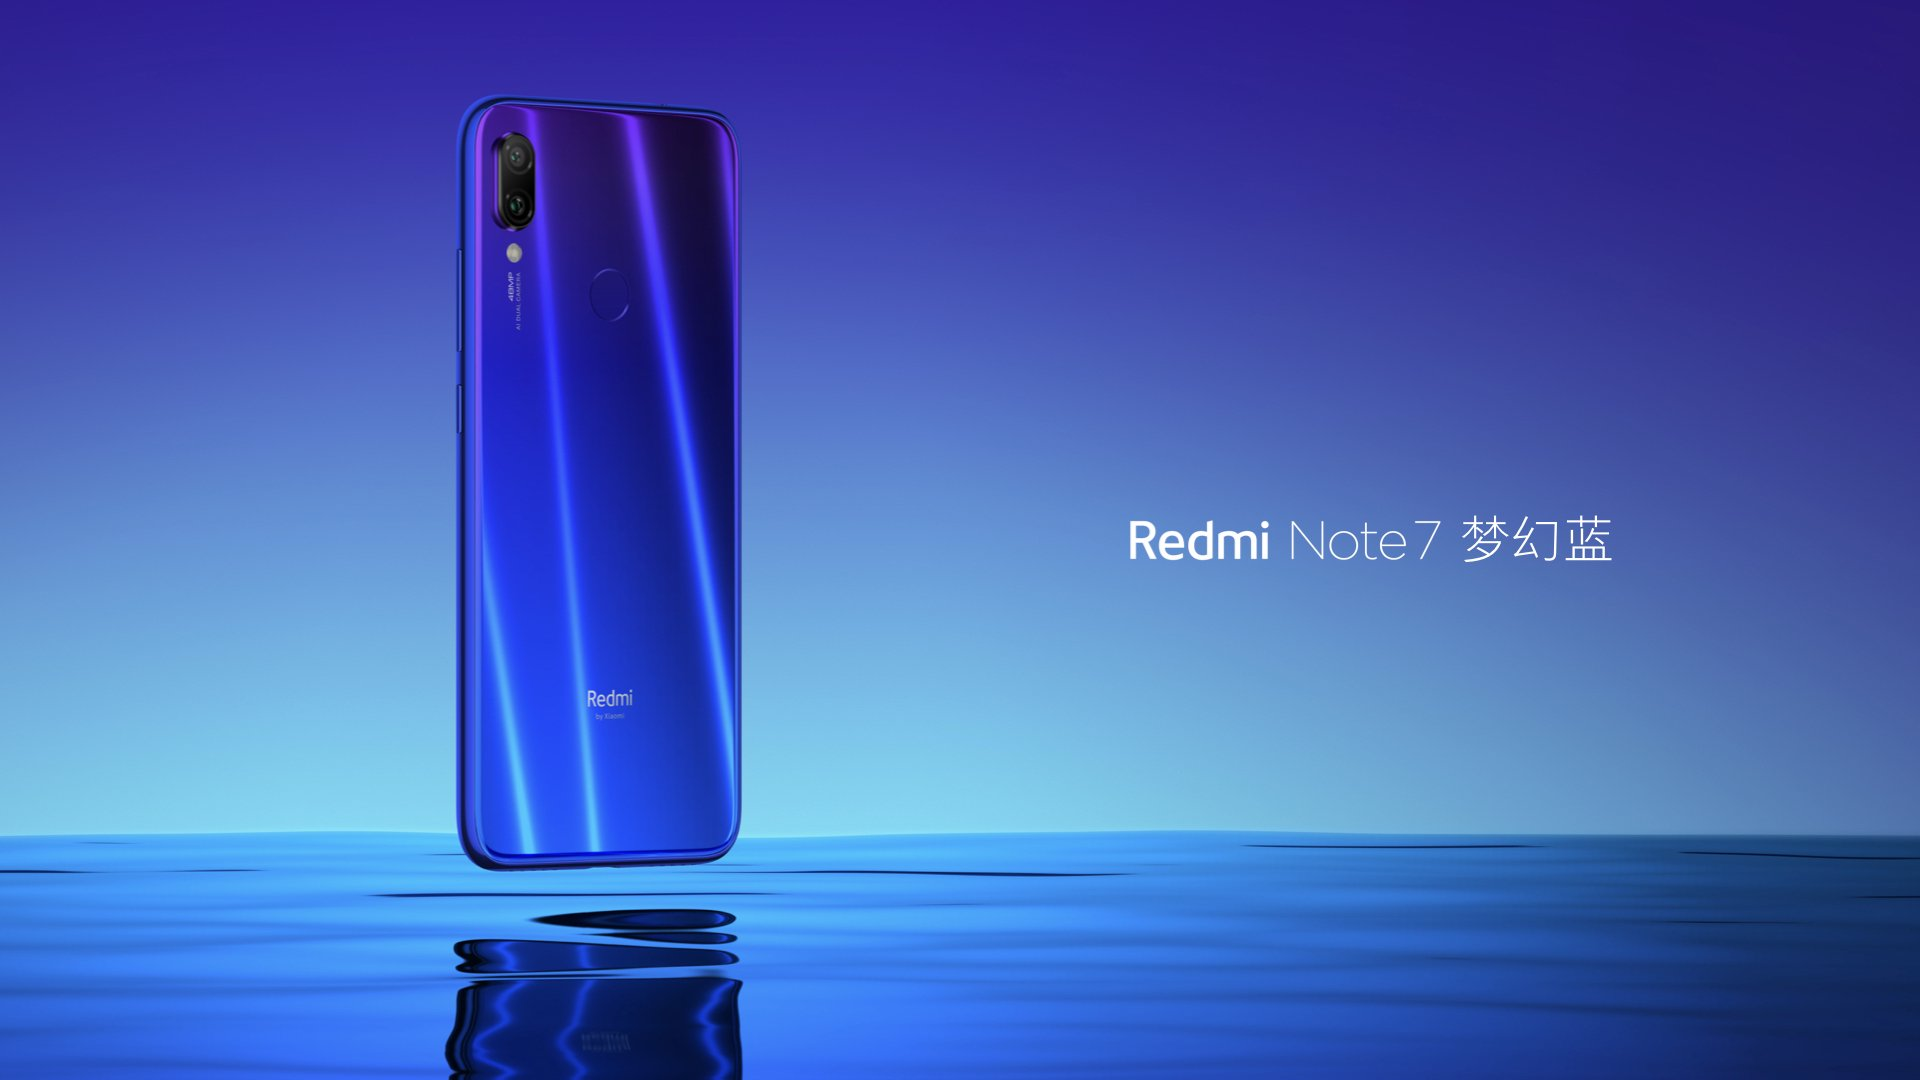 Redmi-Note-7-1-1